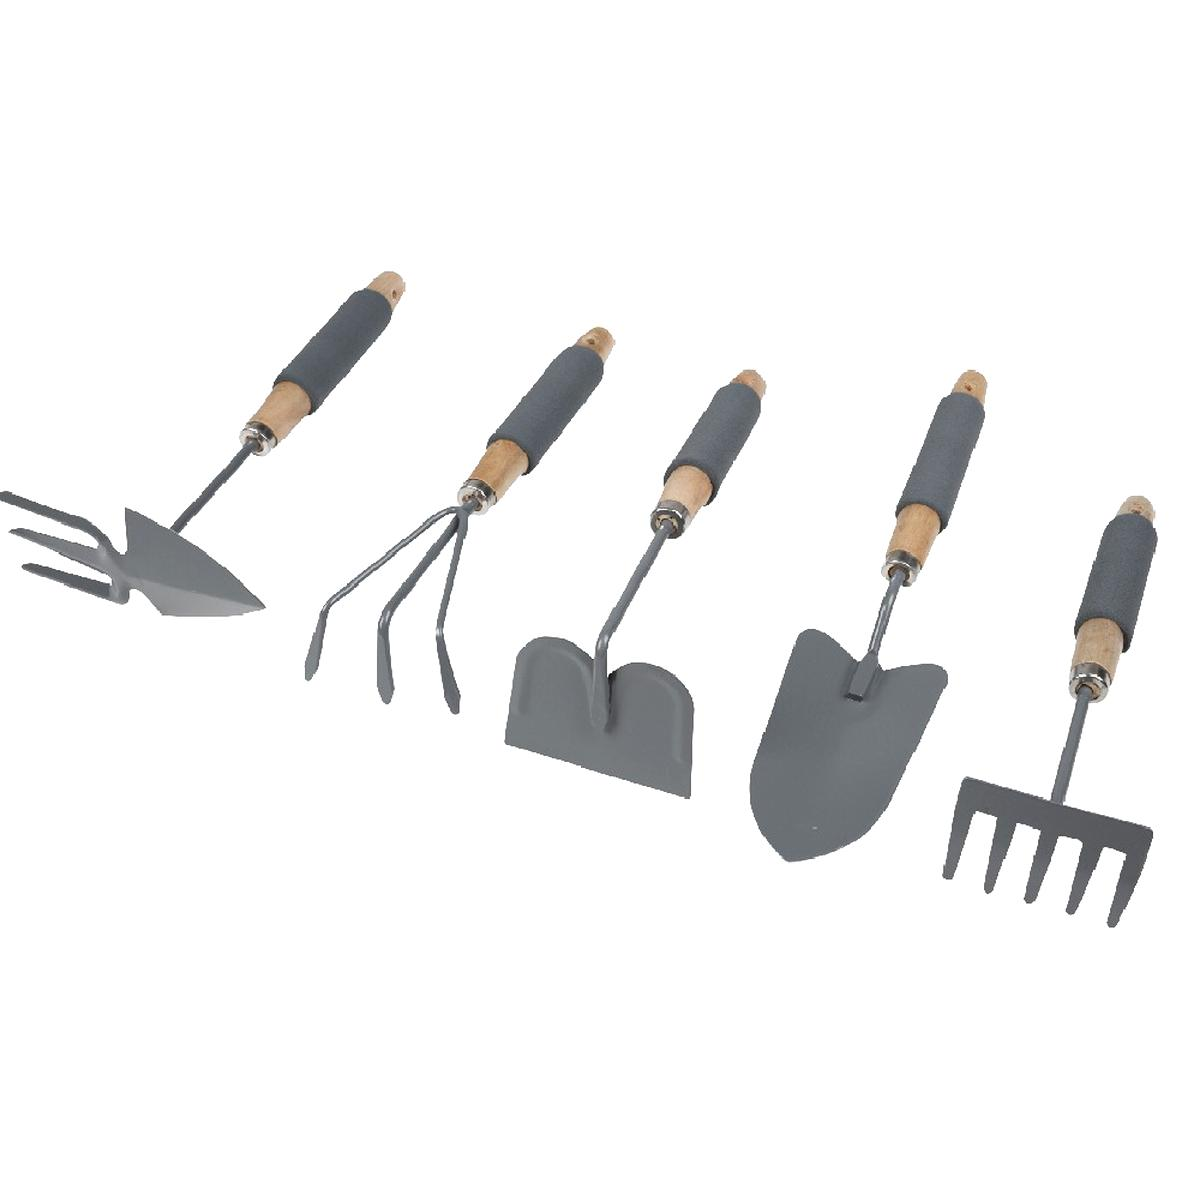 outils jardinage d'occasion